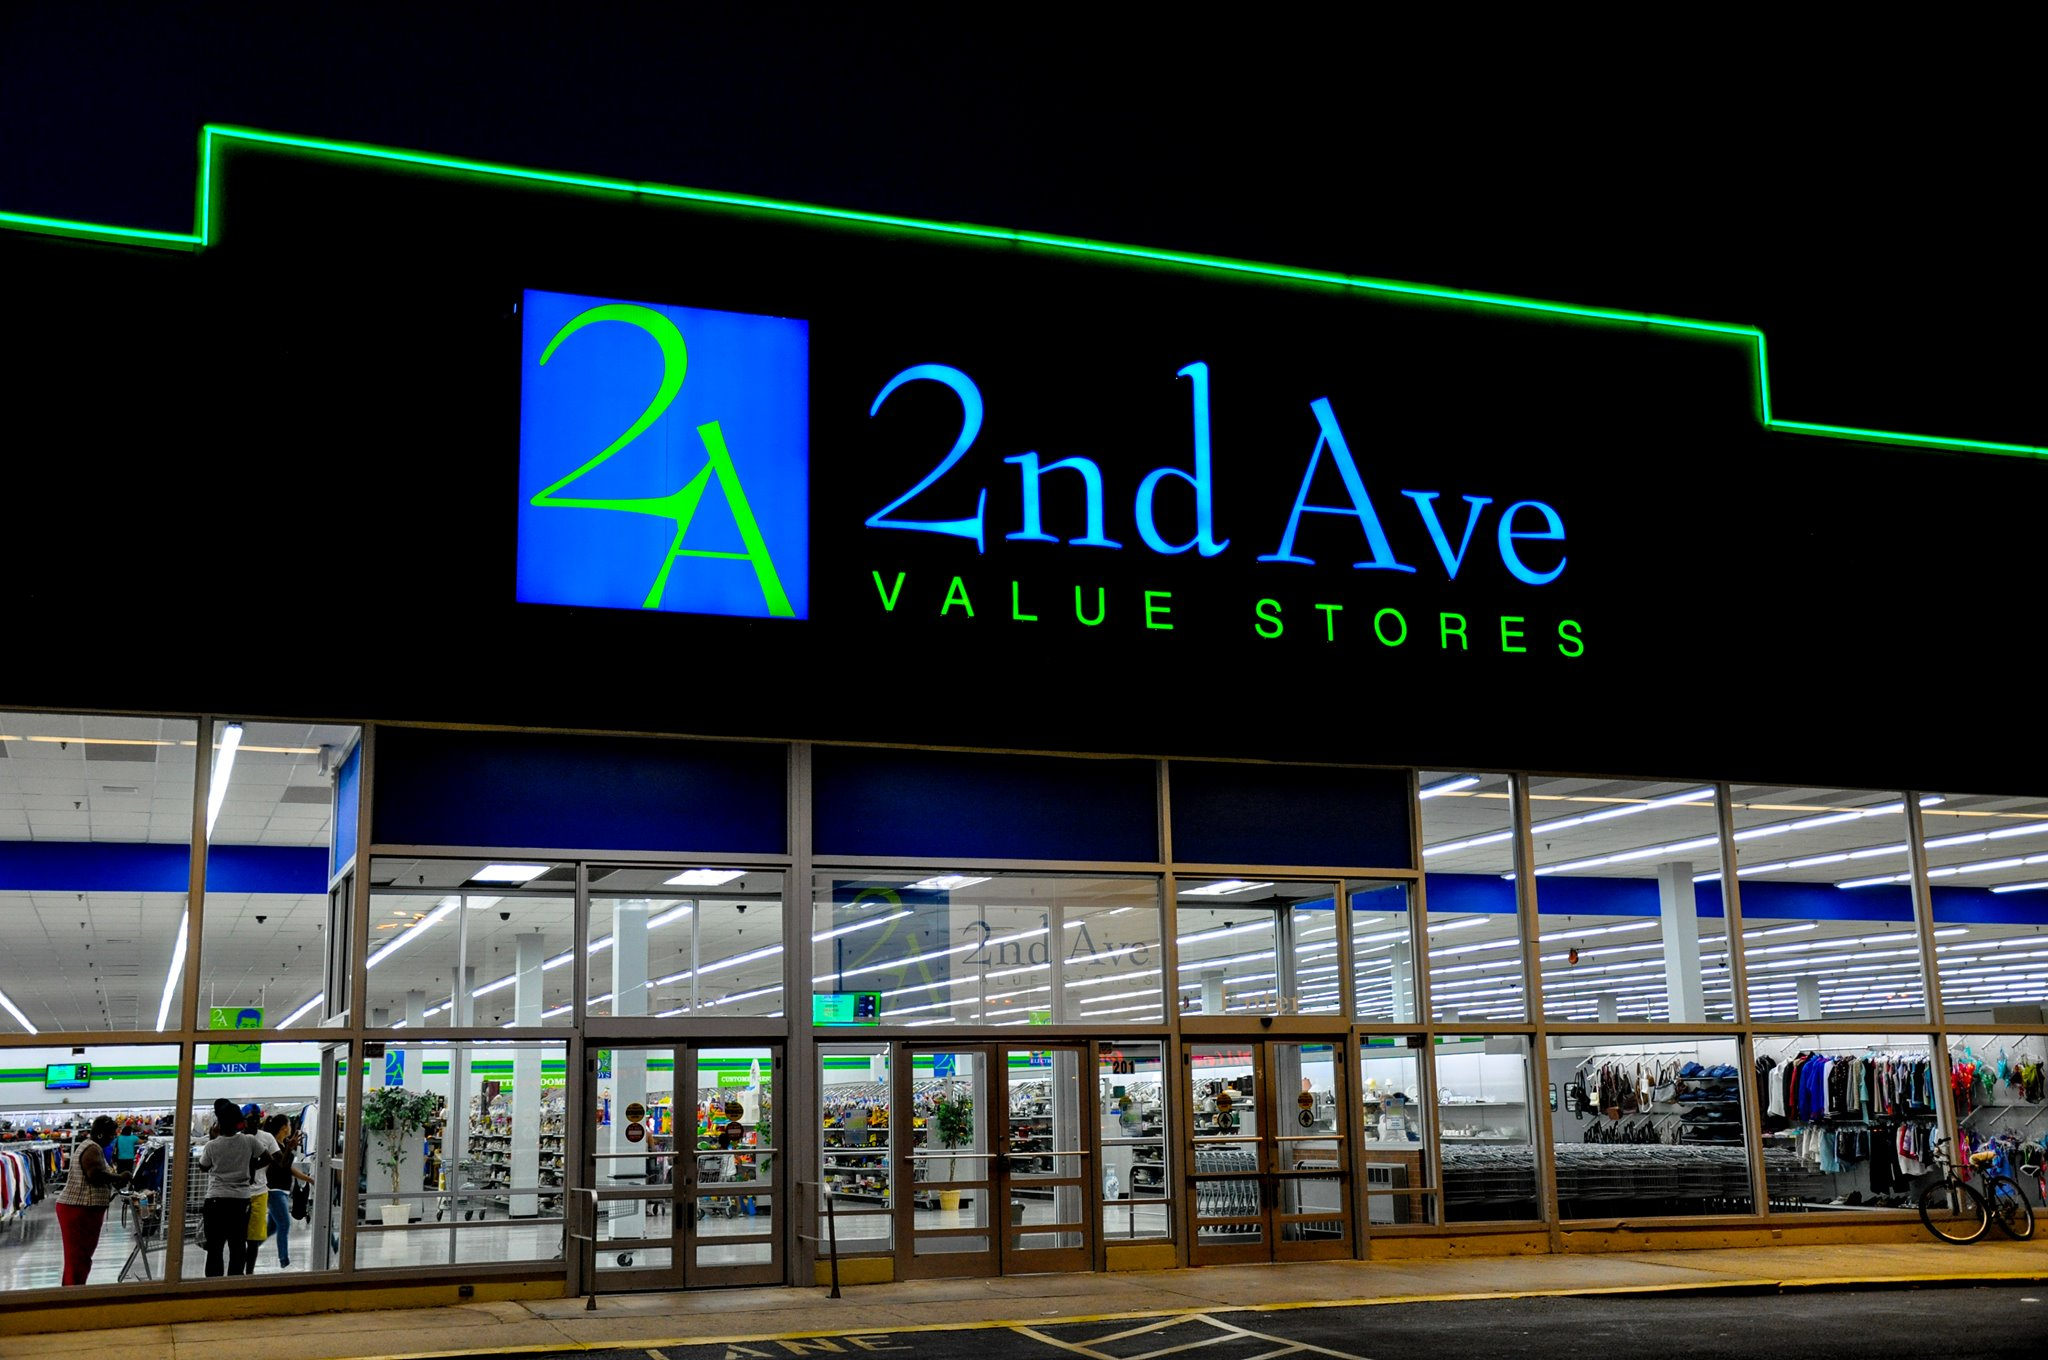 2nd Ave Thrift Superstore